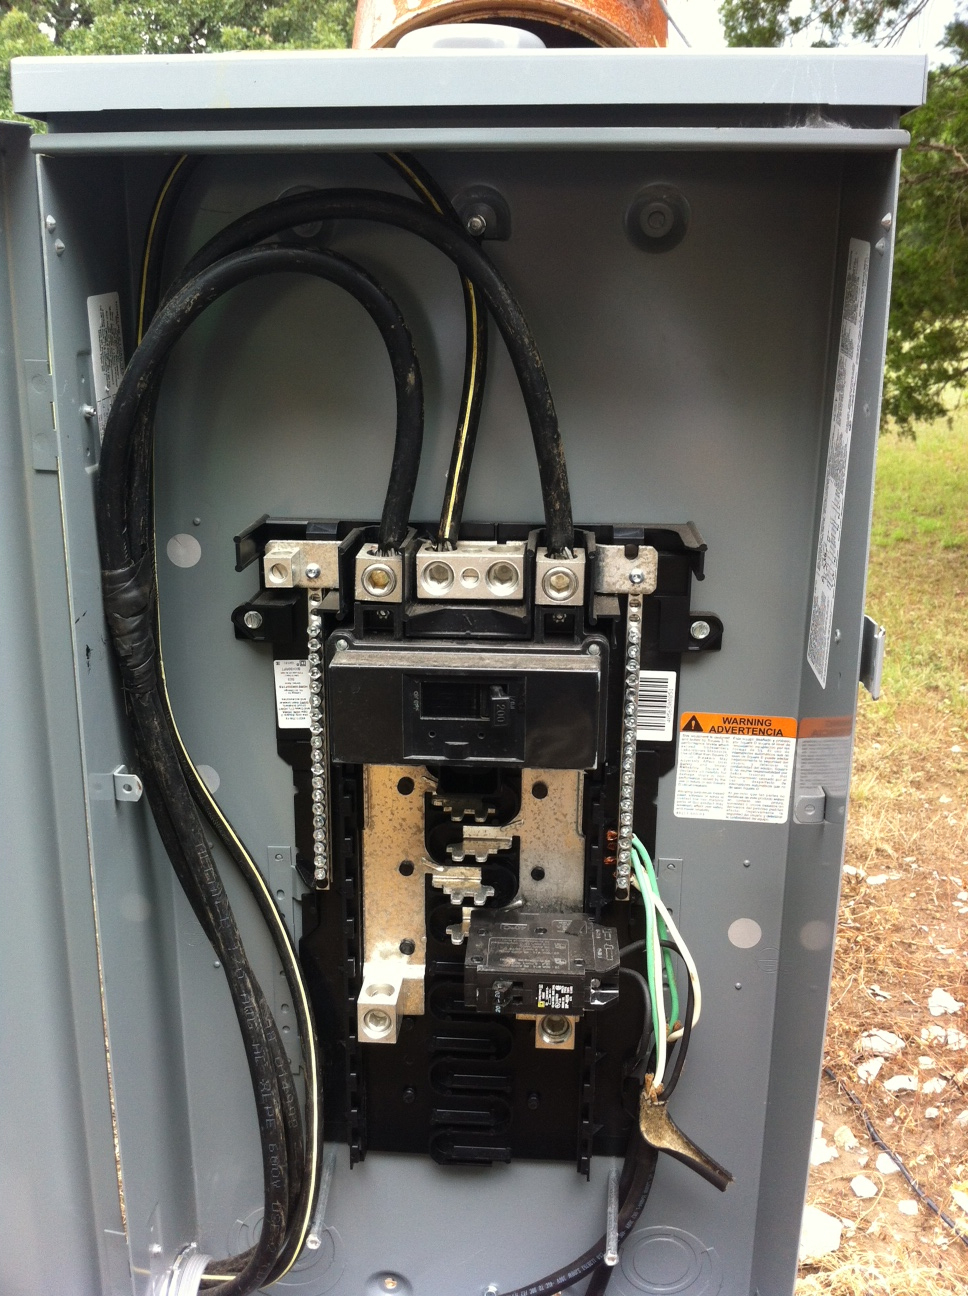 For 200 Amp Disconnect Box Wiring Diagram | Wiring Diagram - 100 Amp Electrical Panel Wiring Diagram